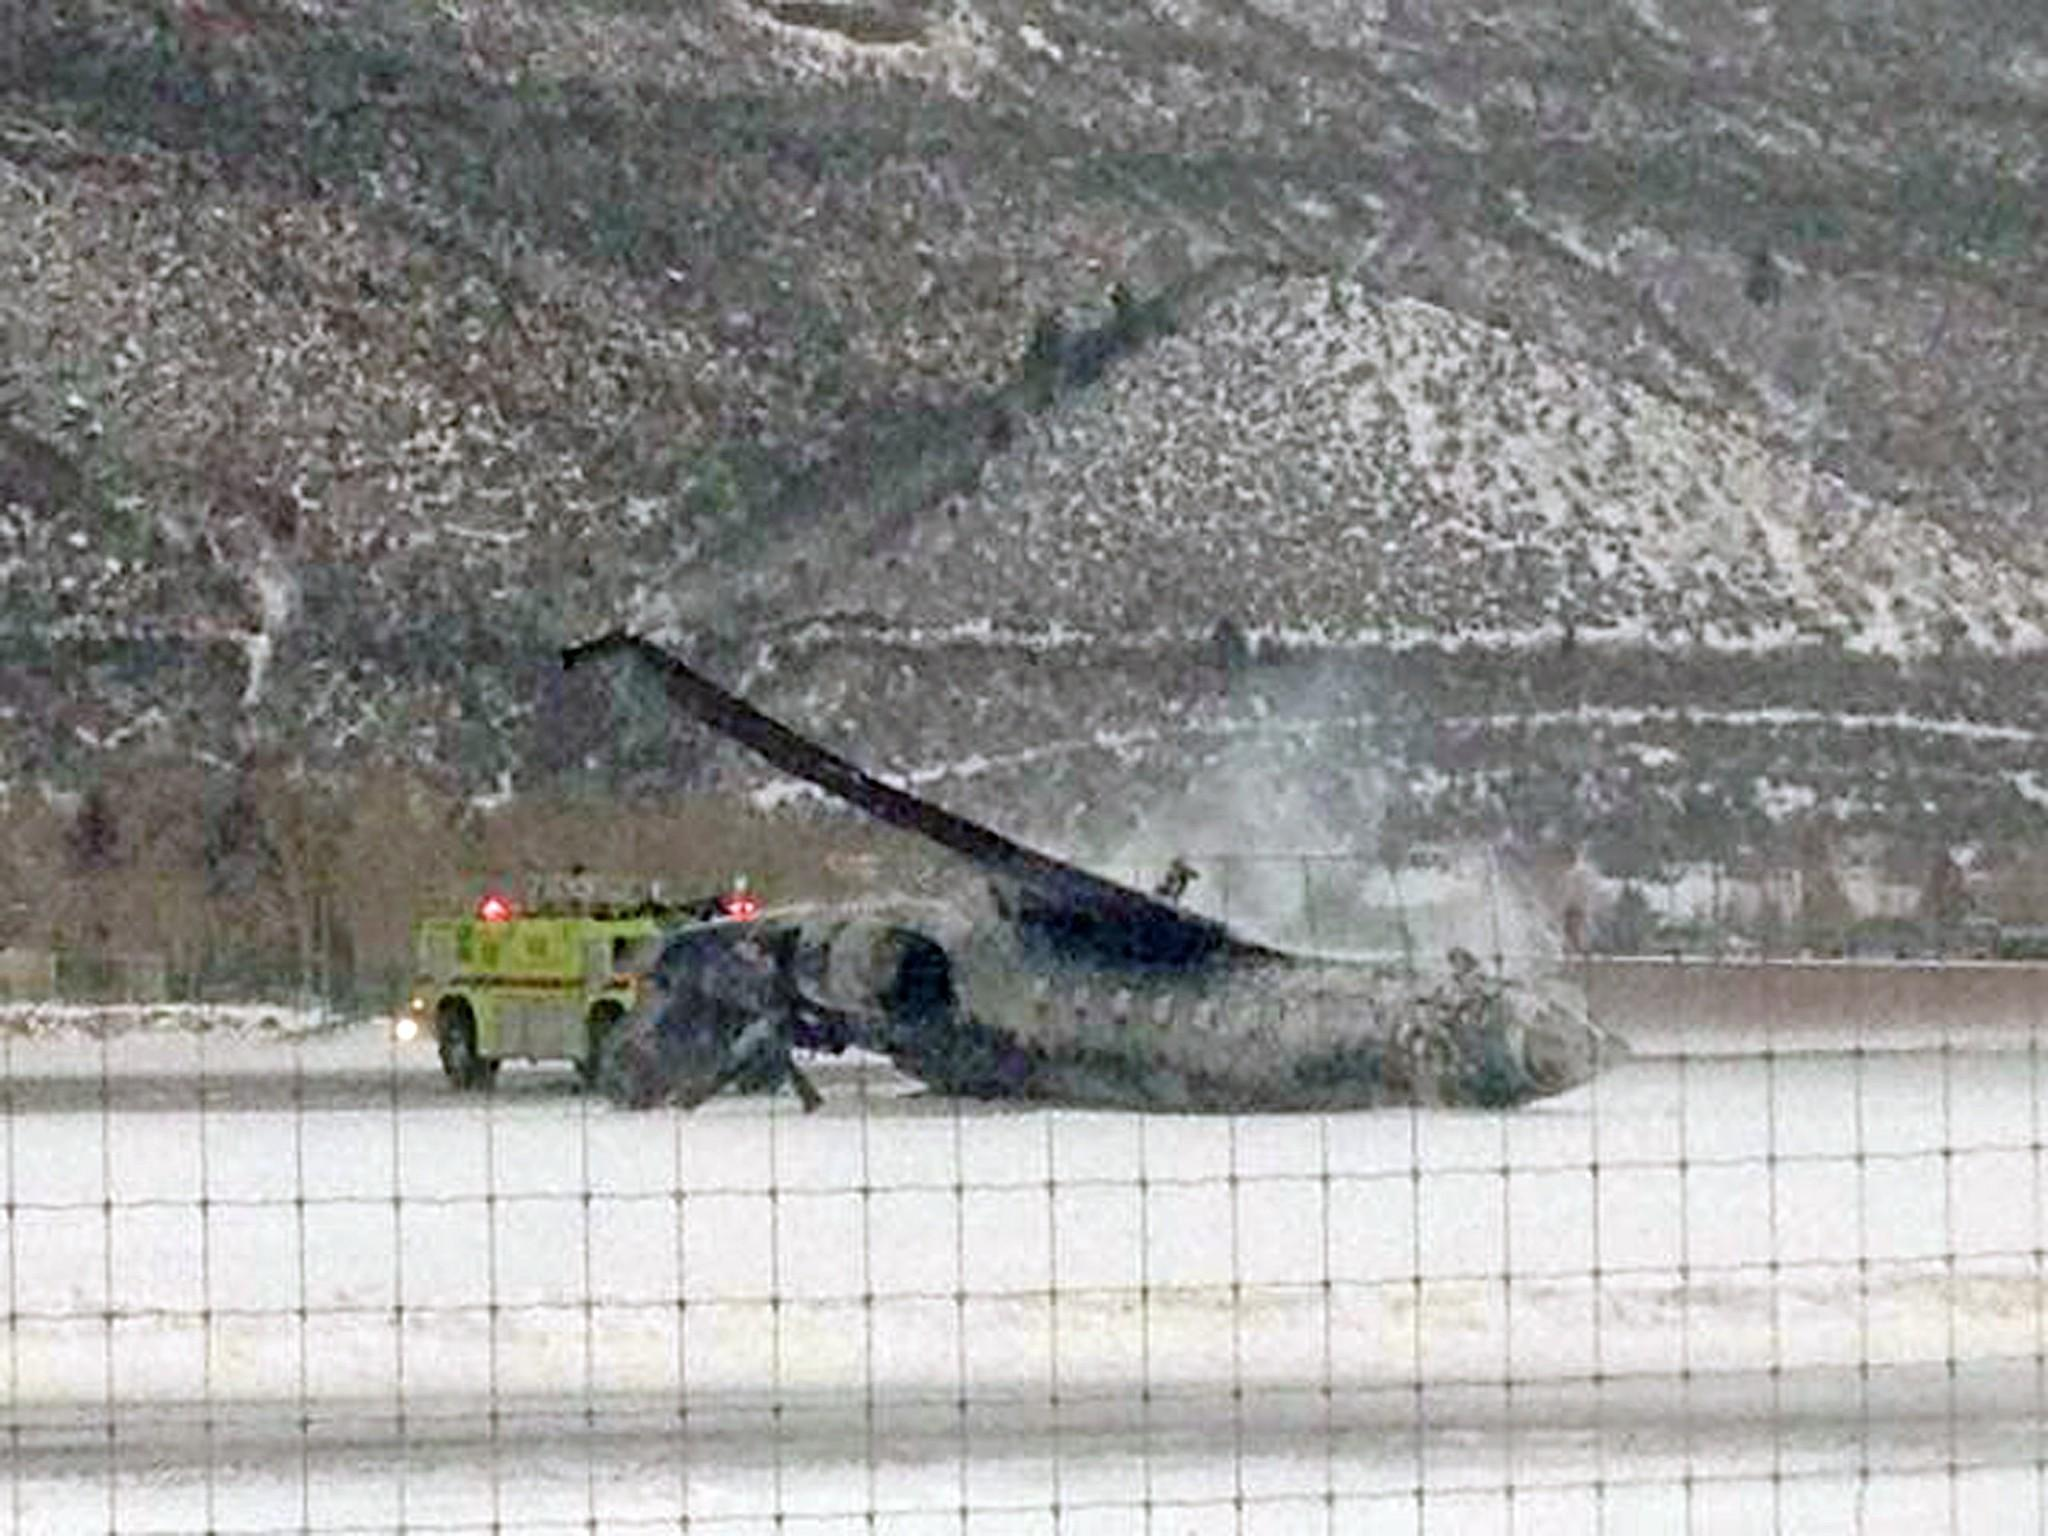 The wreckage of a private jet lies on the runway after it crashed and burned as it landed at Aspen/Pitkin County Airport in Colo. on Jan. 5.